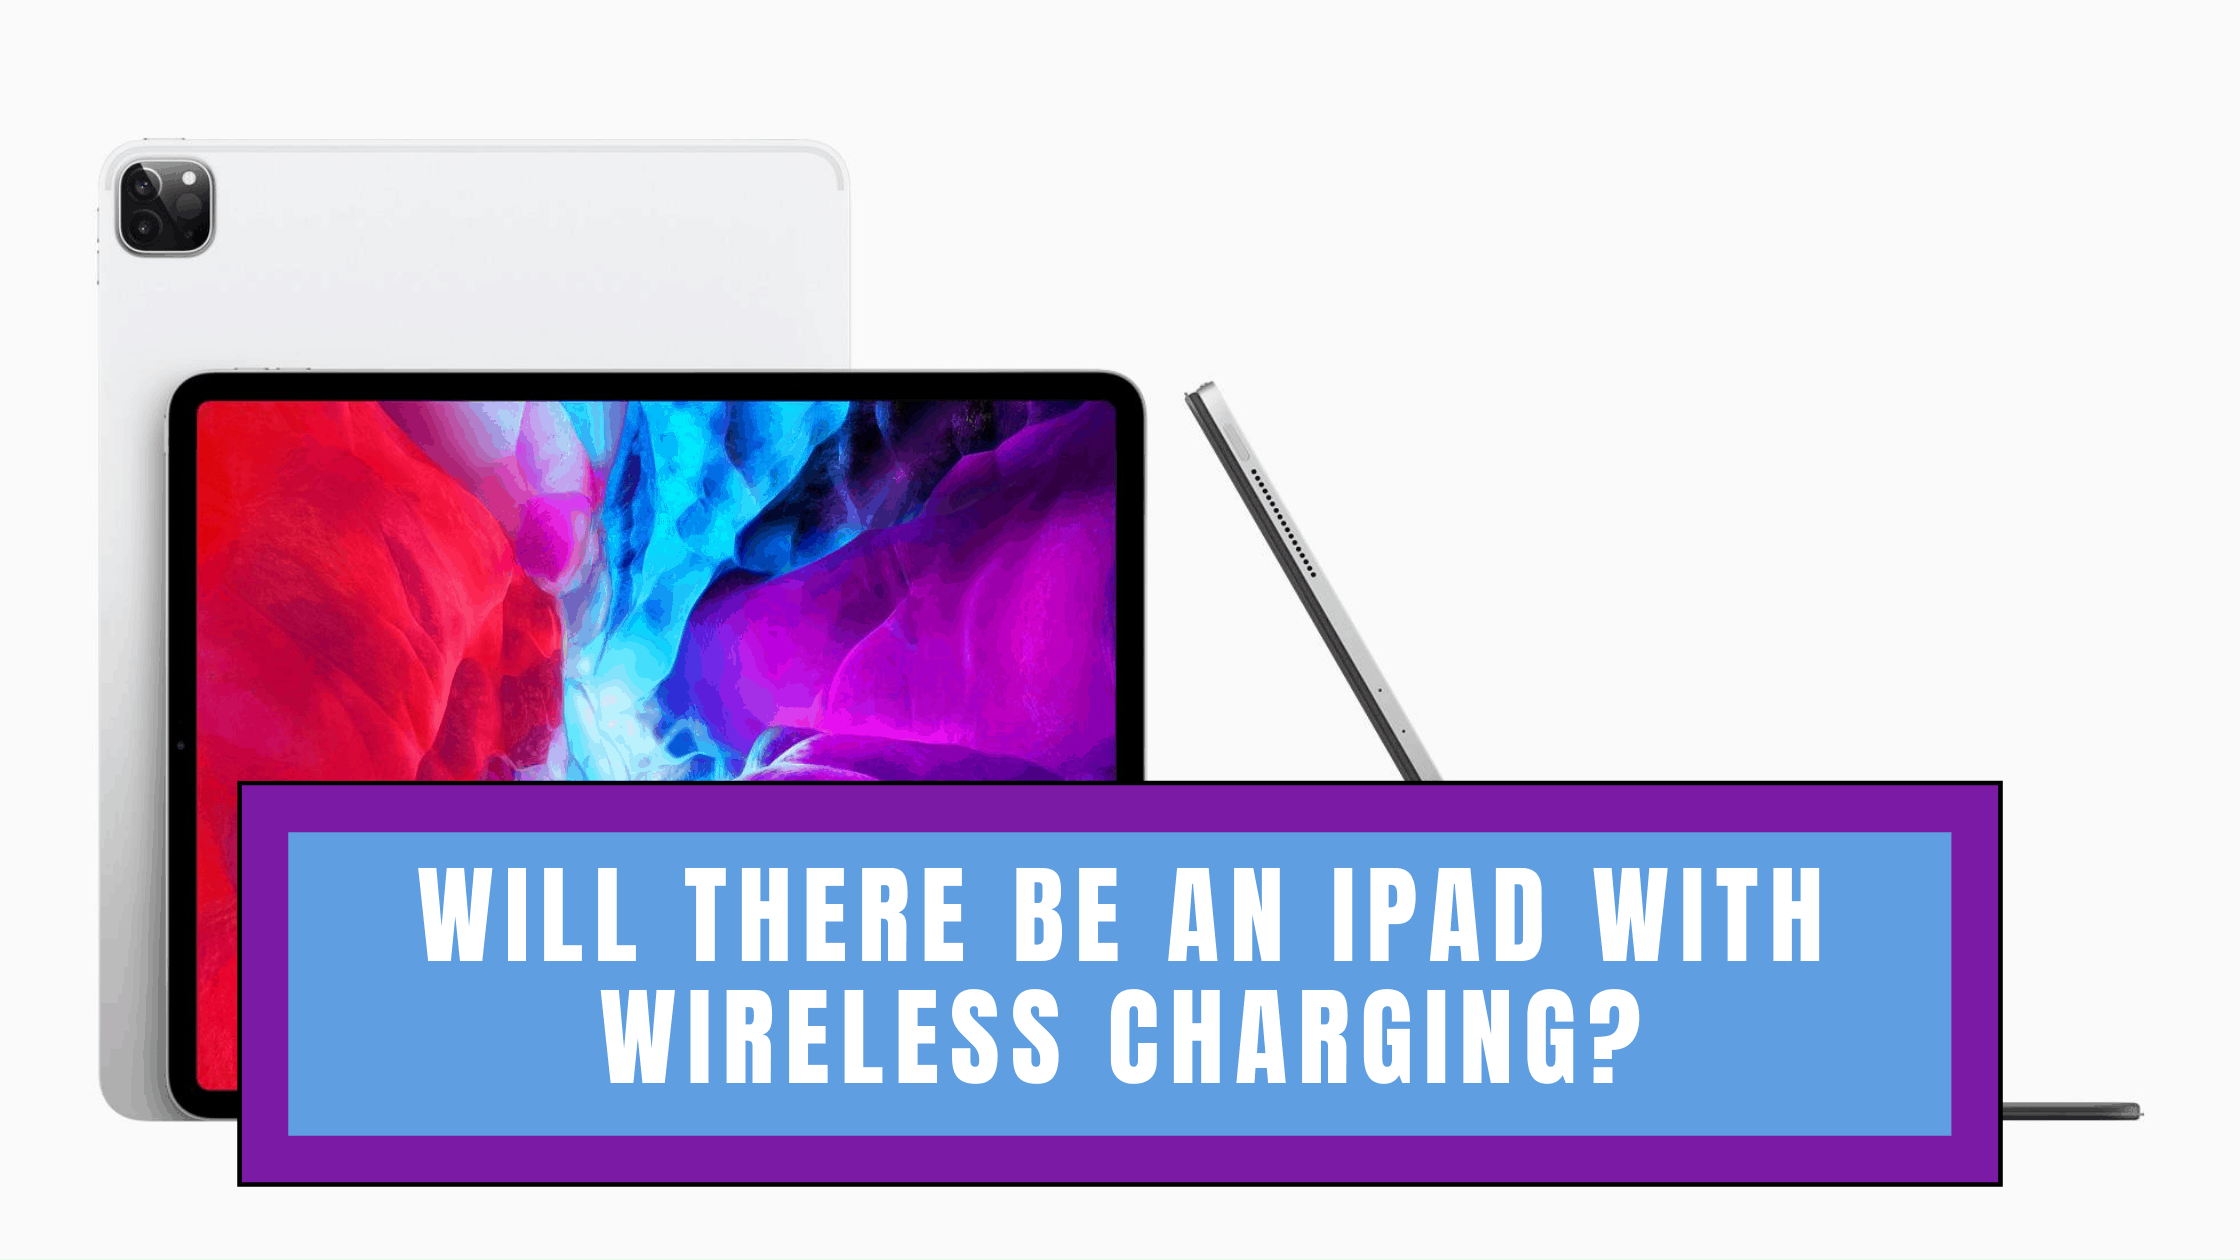 Will there be an iPad with Wireless Charging